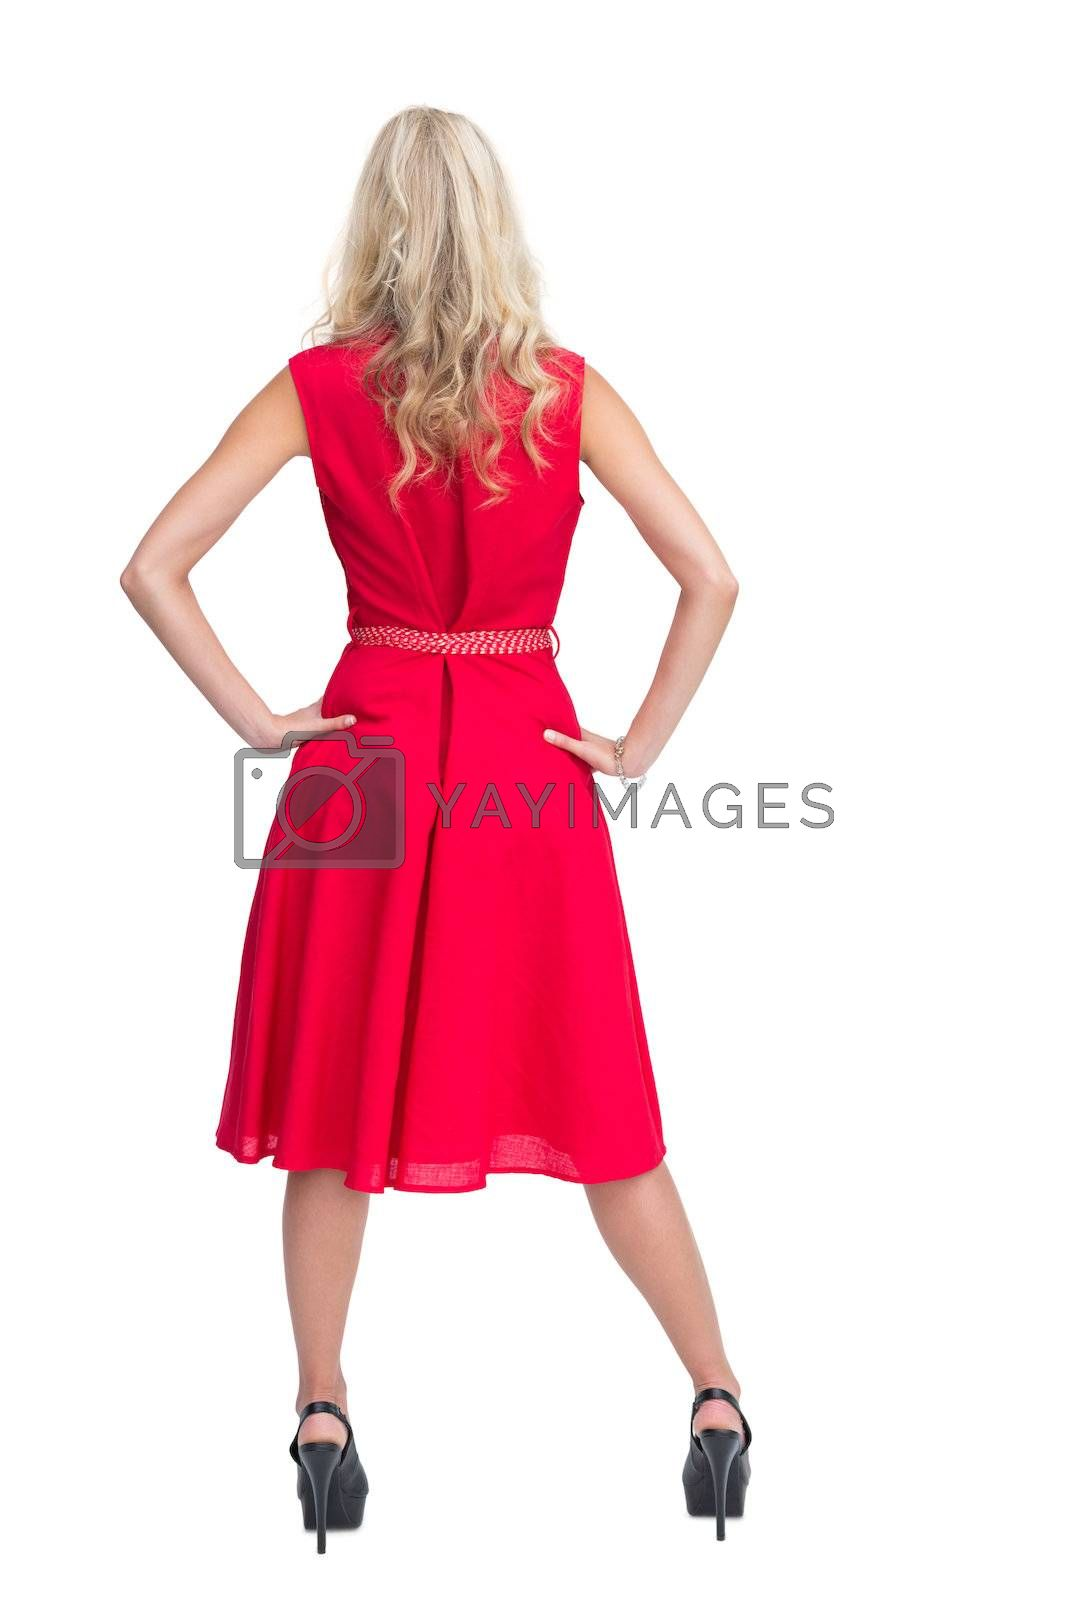 Rear view of gorgeous blonde in red dress posing by Wavebreakmedia